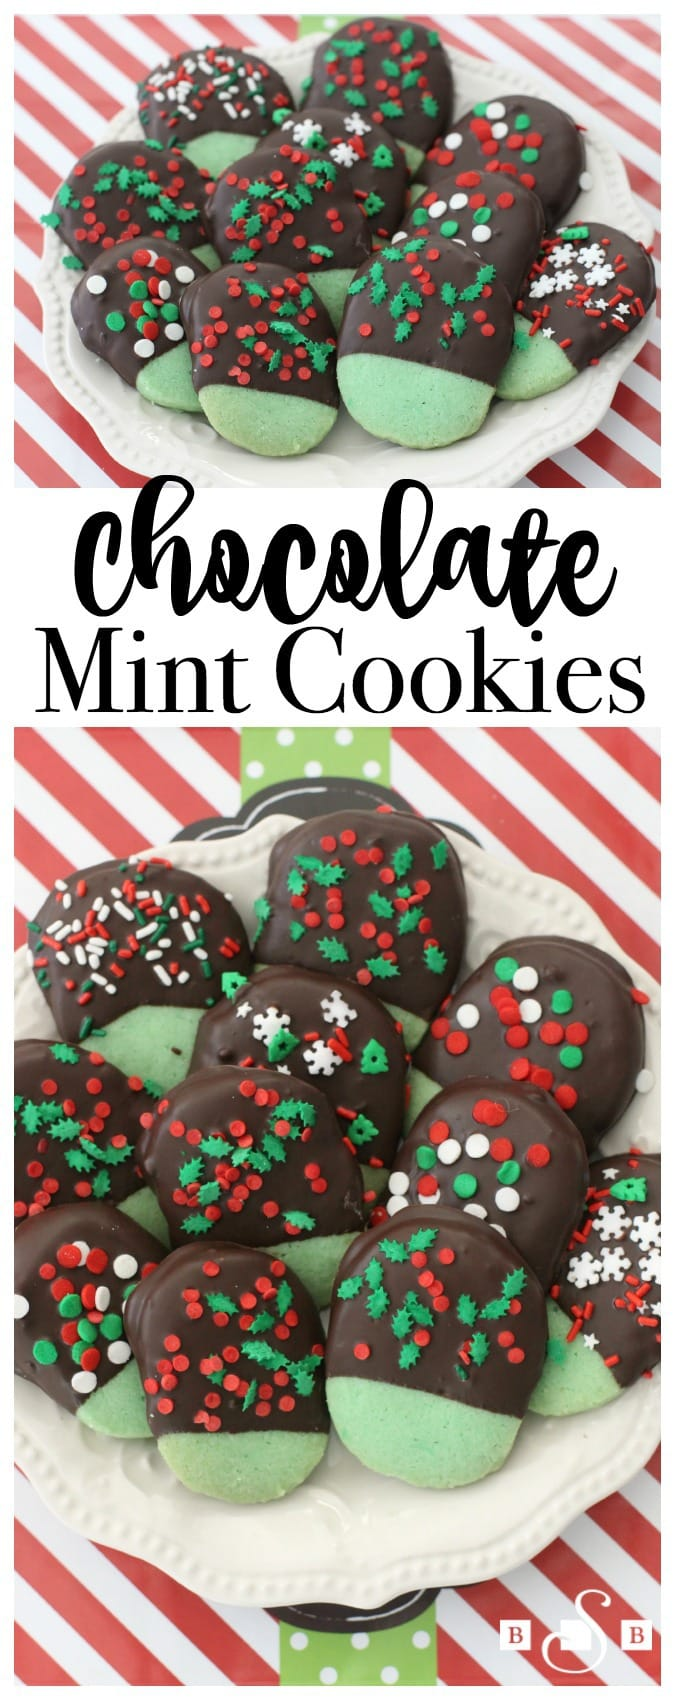 Chocolate Mint Cookies made from a buttery #mint shortbread cookie dipped in dark chocolate & topped with festive holiday sprinkles.My favorite Christmas cookie!